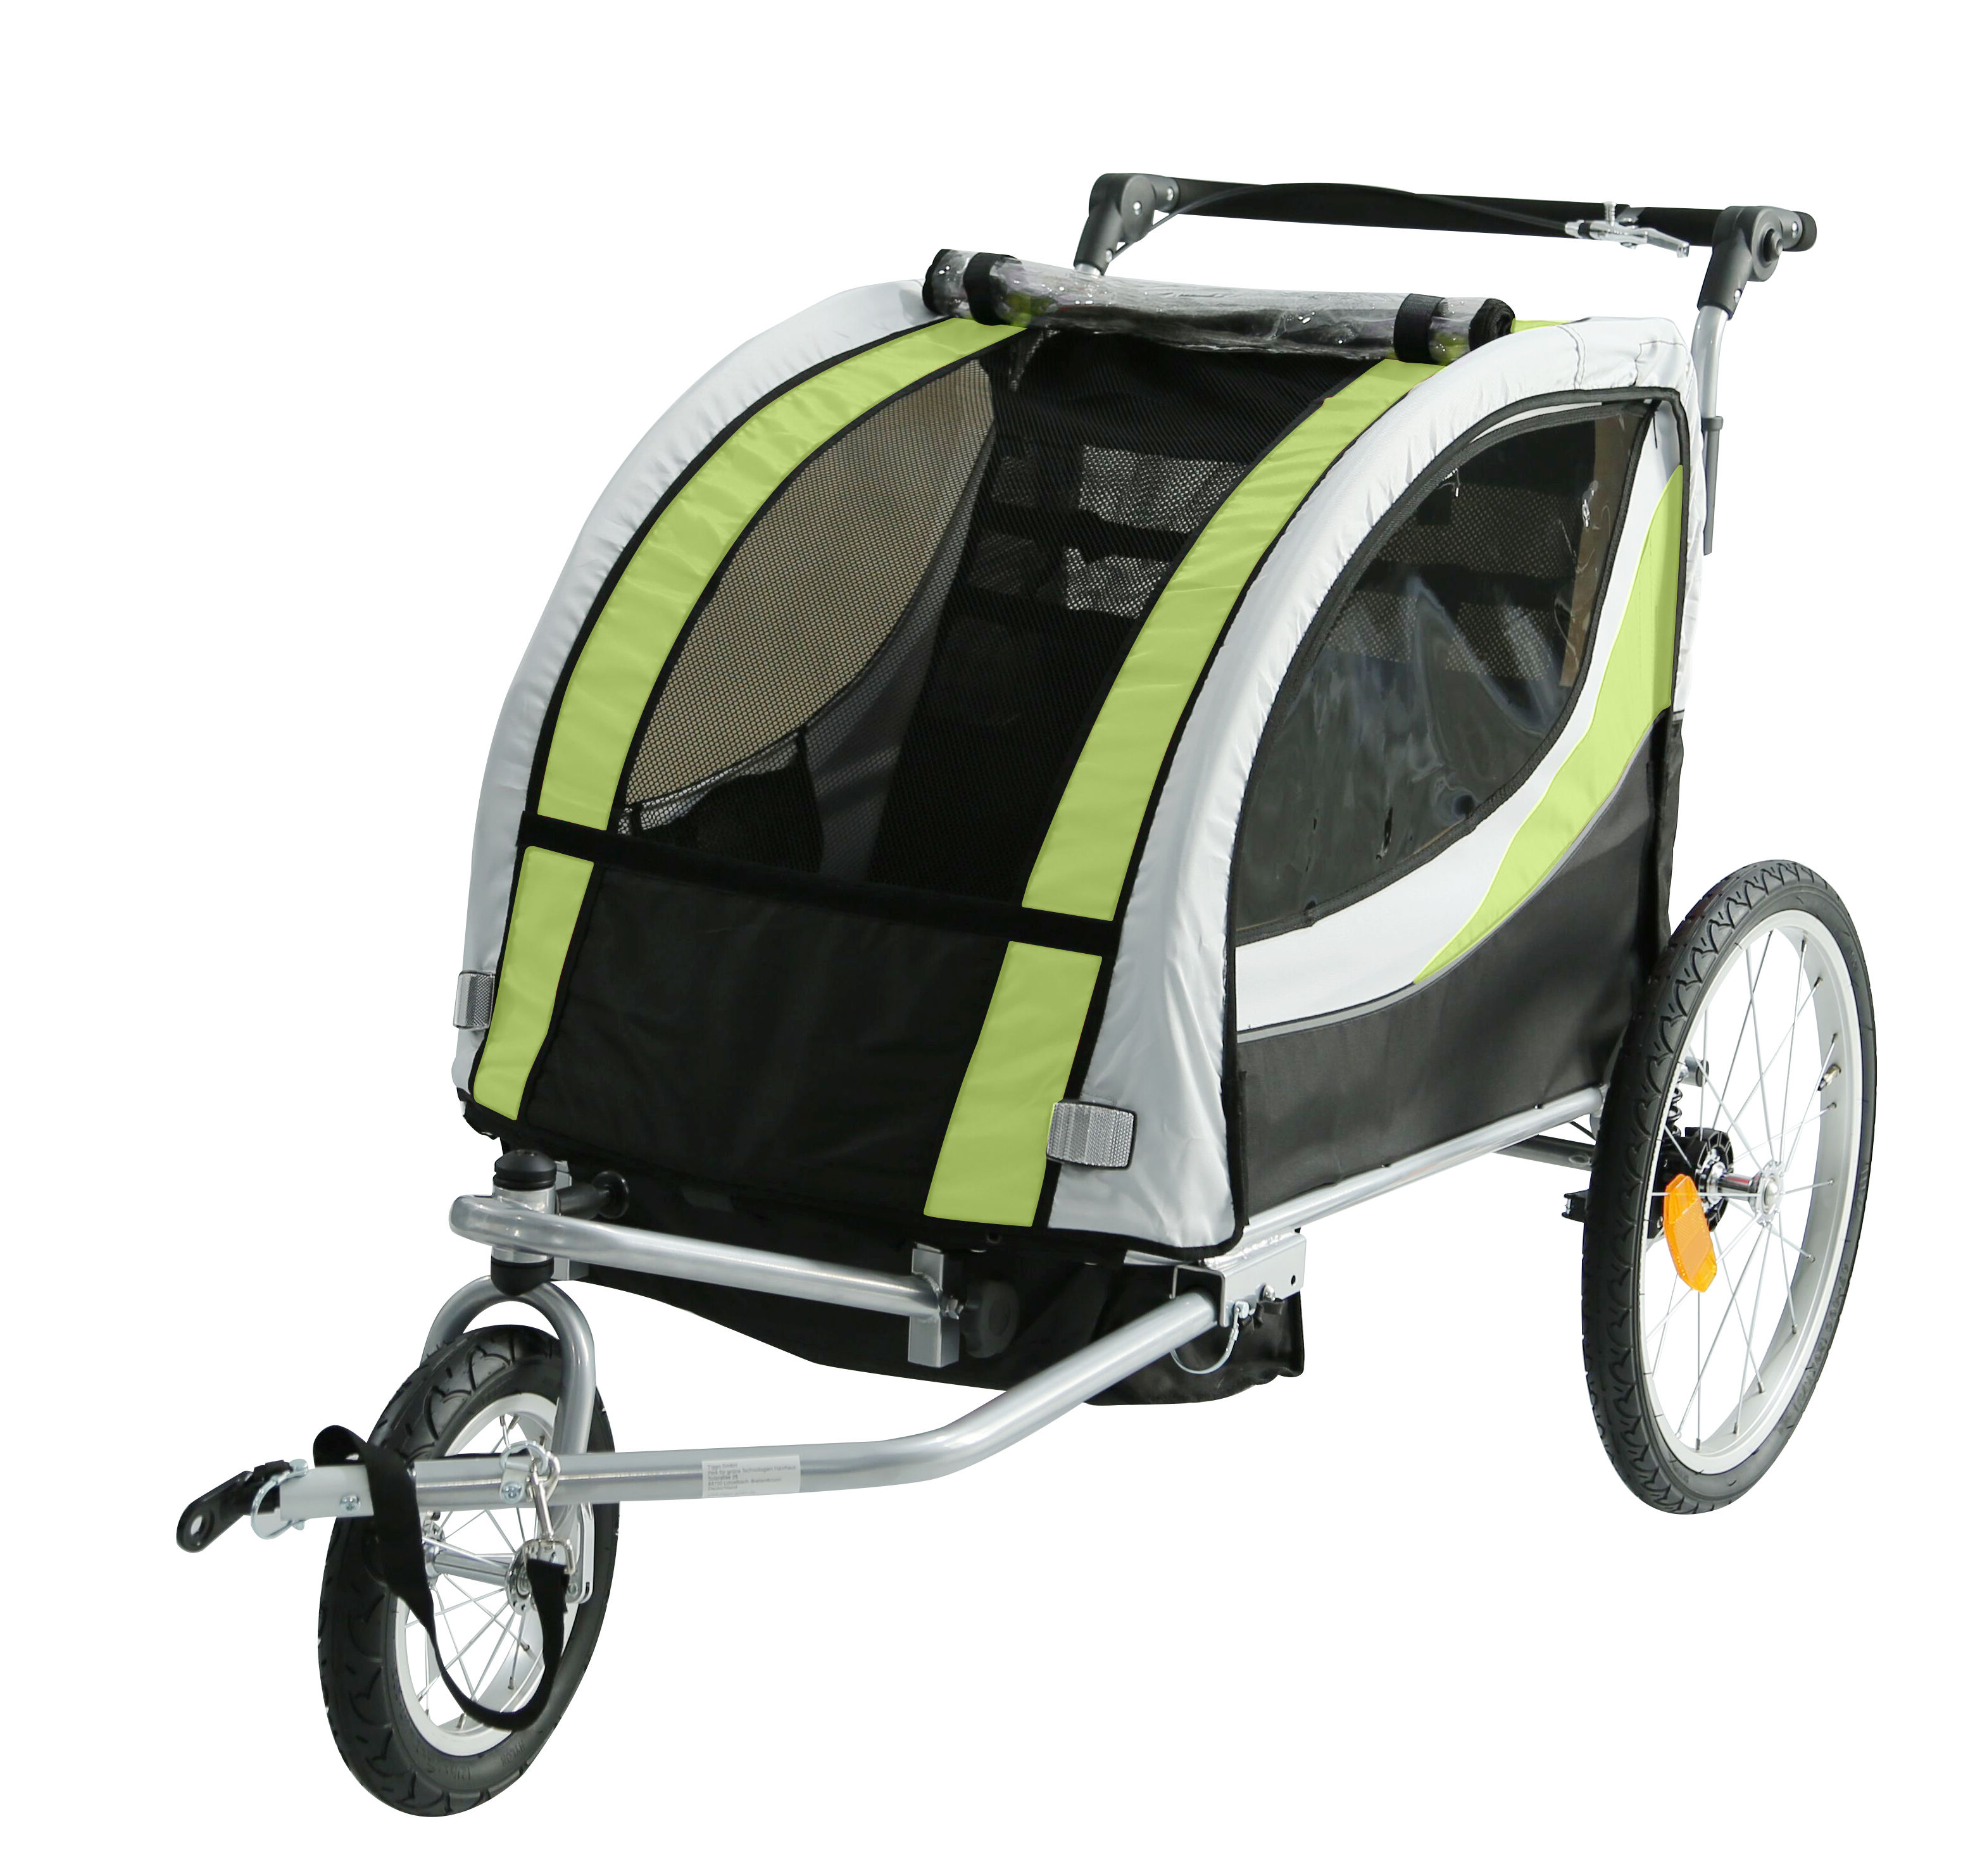 Adjustable Travel Wholesale High Quality Baby Pram Stroller Twins Bicycle Trailer for kids